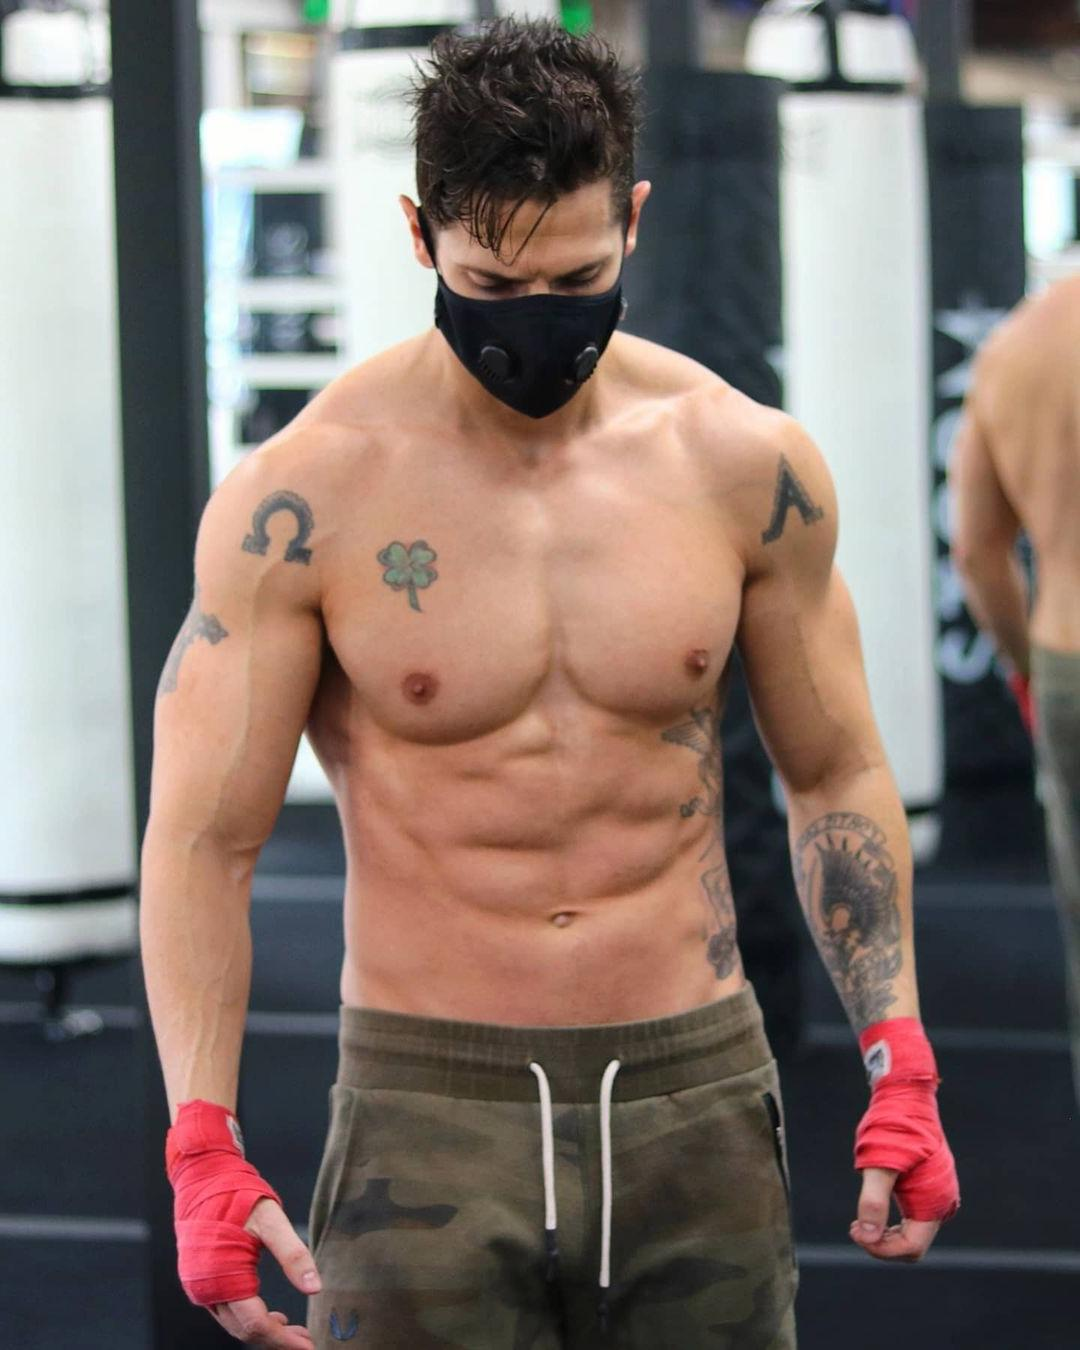 fit-muscular-shirtless-gym-guy-tyler-james-strong-young-warrior-body-tatoos-face-mask